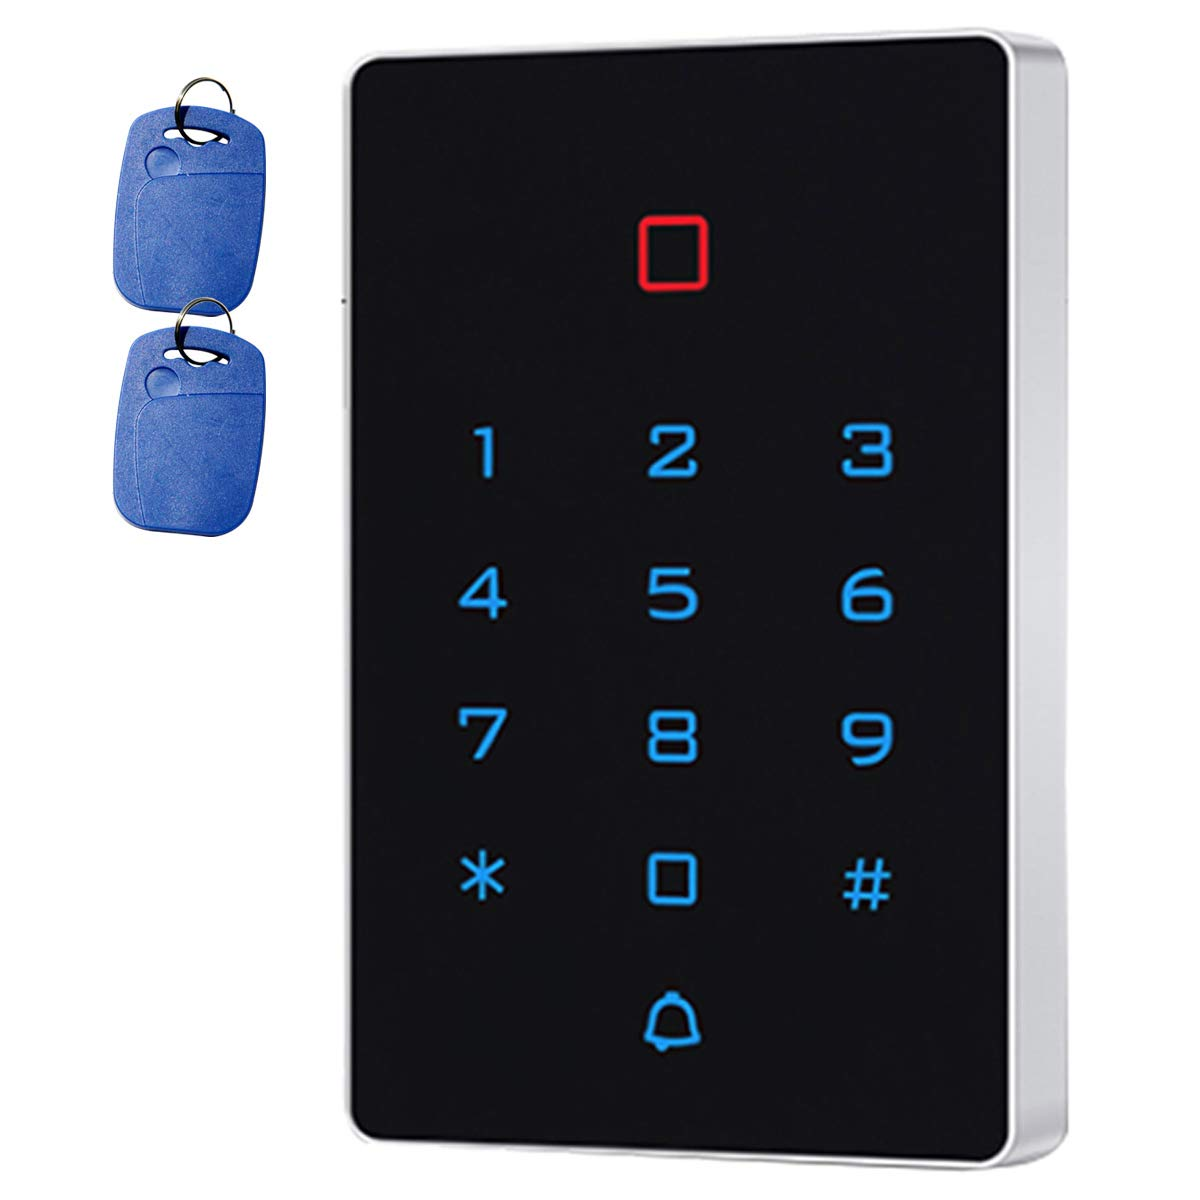 Supreform IP67 Outdoor Waterproof Universal 12-24VDC Digital Touch-Key Wired Keypad for Garage Door, Access Control Systems and Gate Opener, Code or ID Card Access